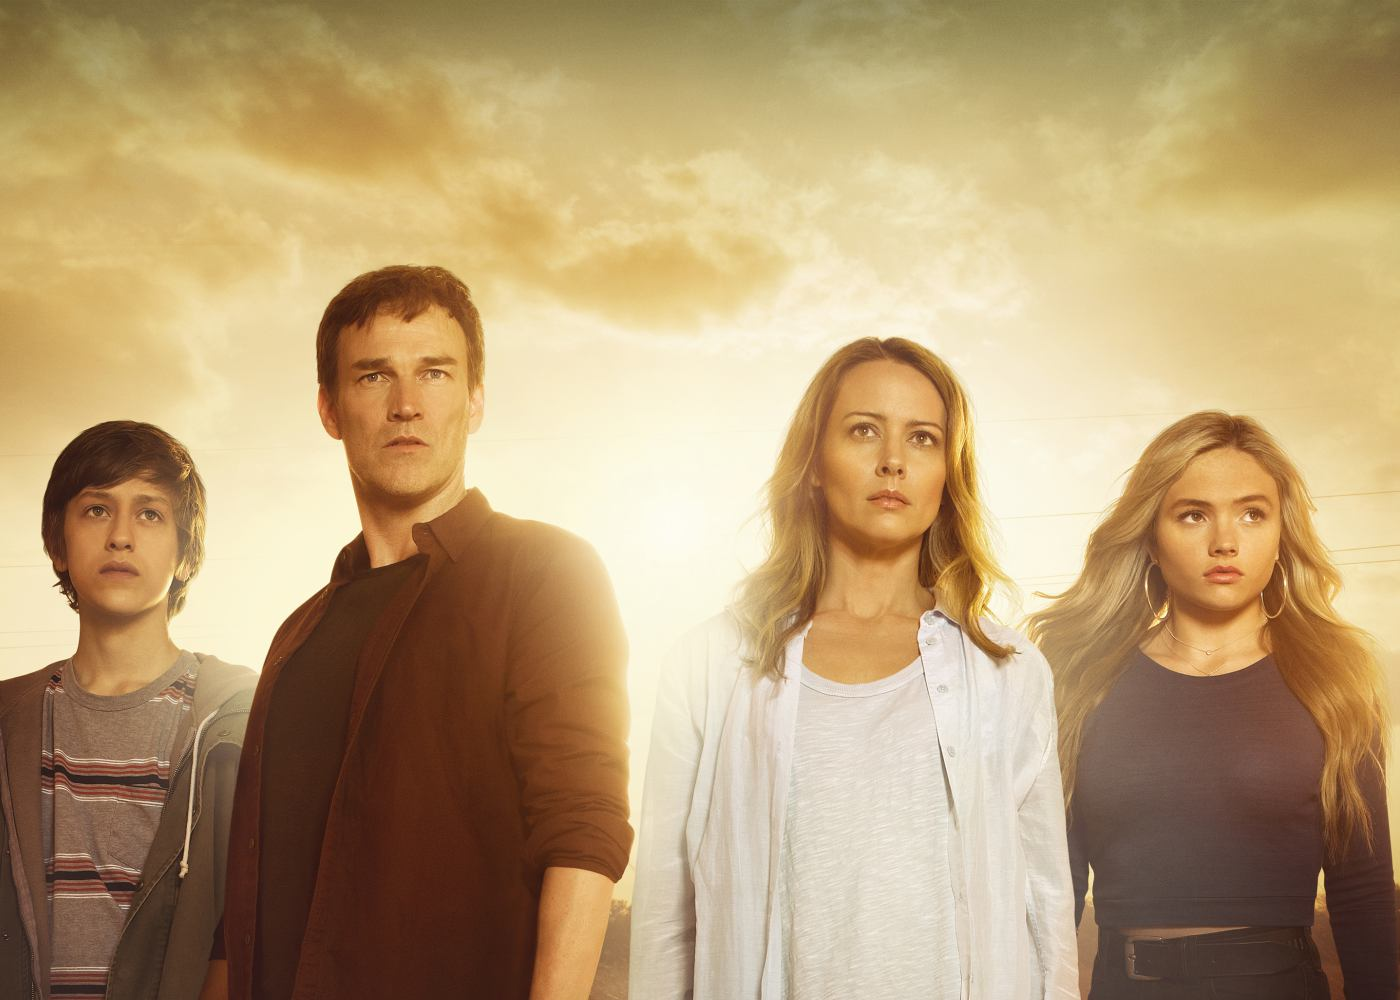 Fox Releases a New Trailer for X-Men Series The Gifted